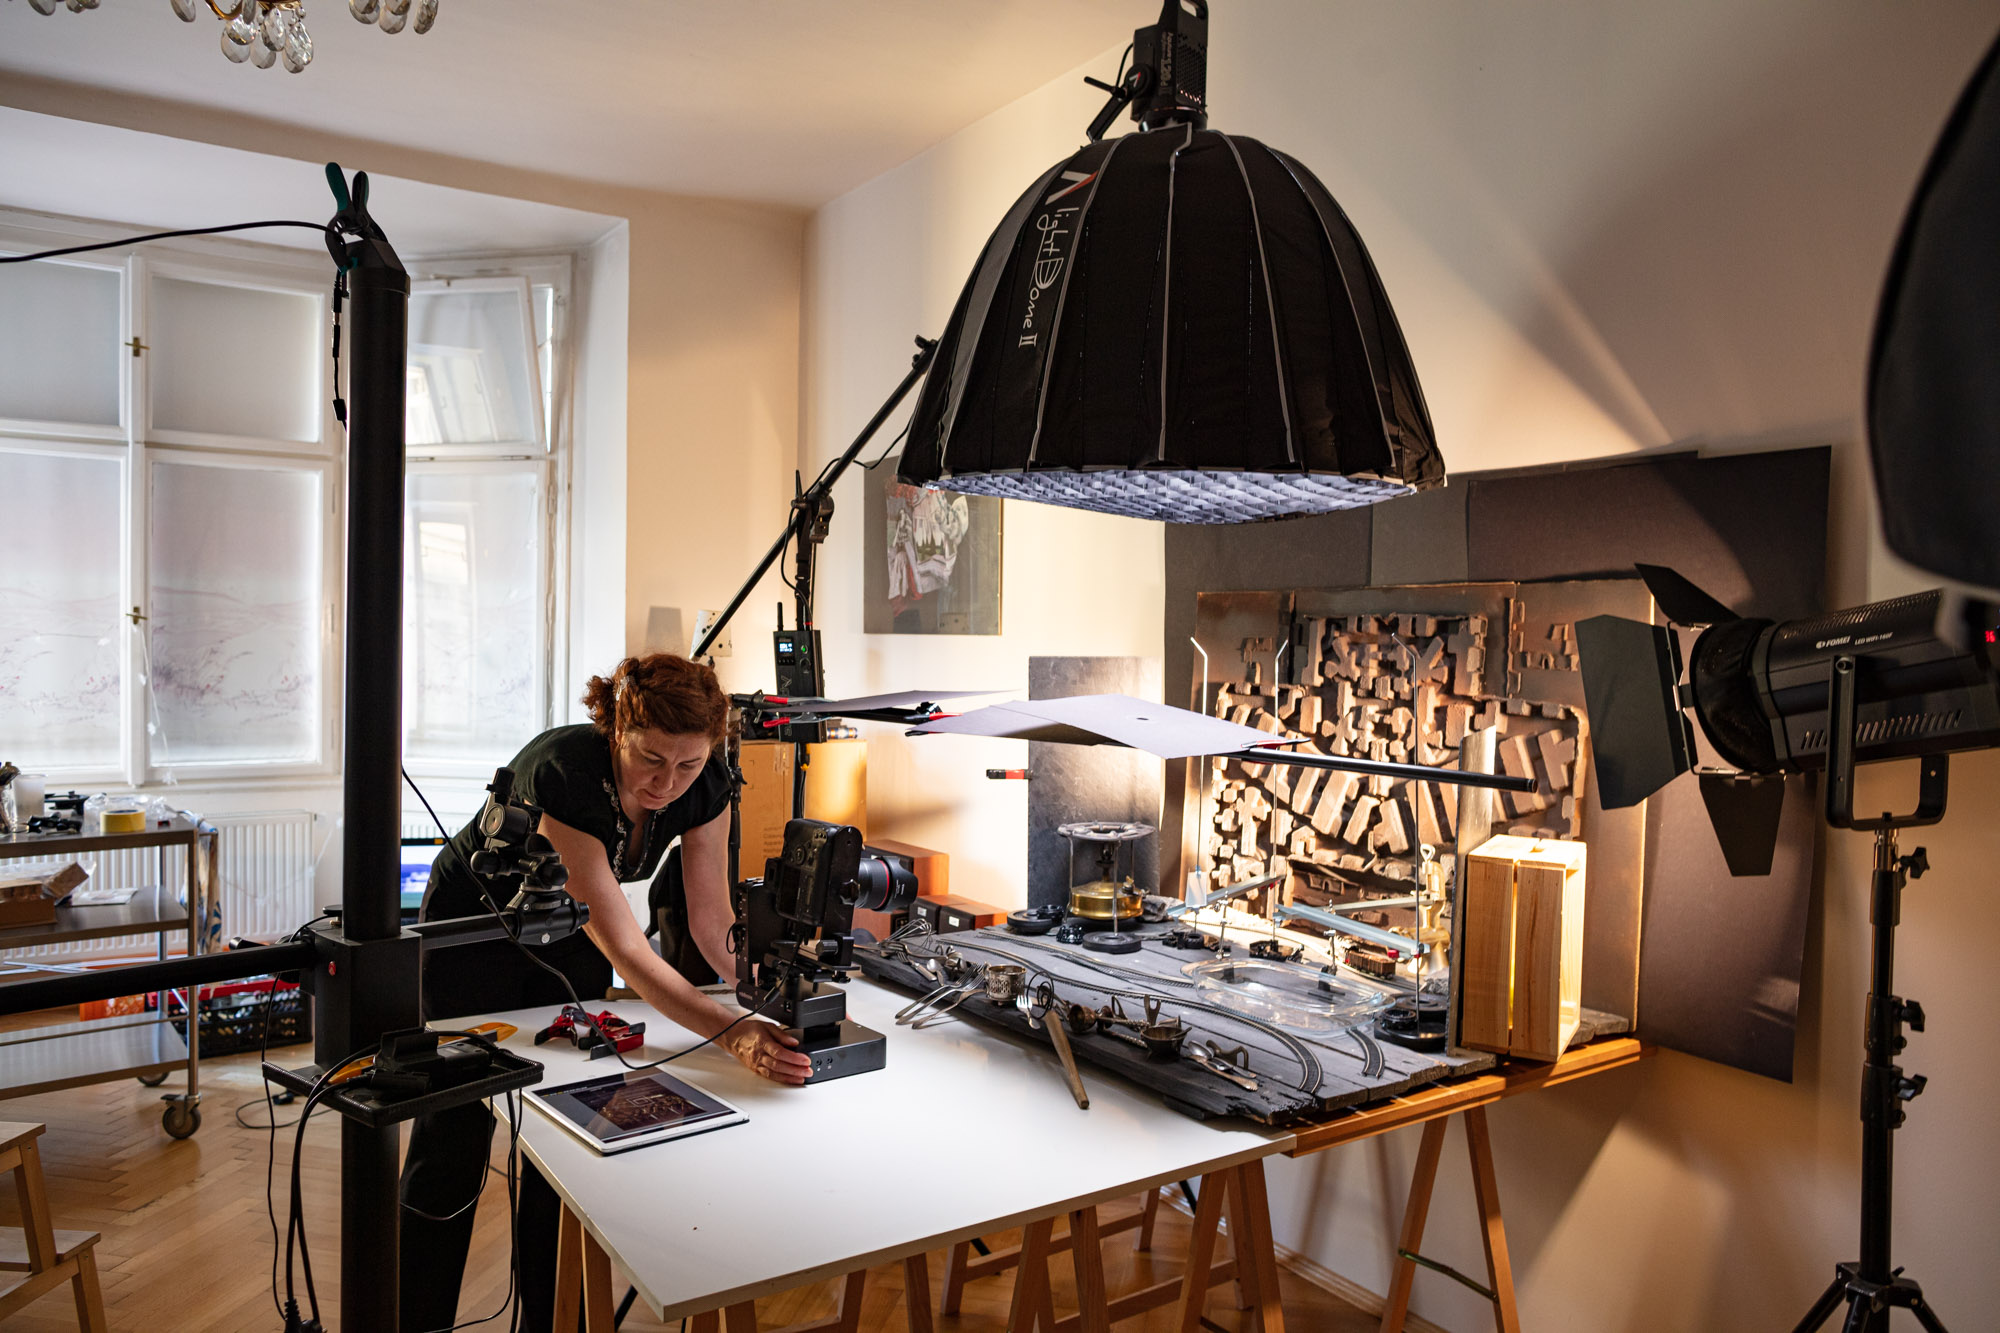 """Behind the scenes at the video production of """"Vegan Cherry Crumble Pie Recipe"""". A big table set up resembling a """"pie factory"""". In a studio with various lamps and cameras. The stylist/art director is checking the angle and camera movement."""